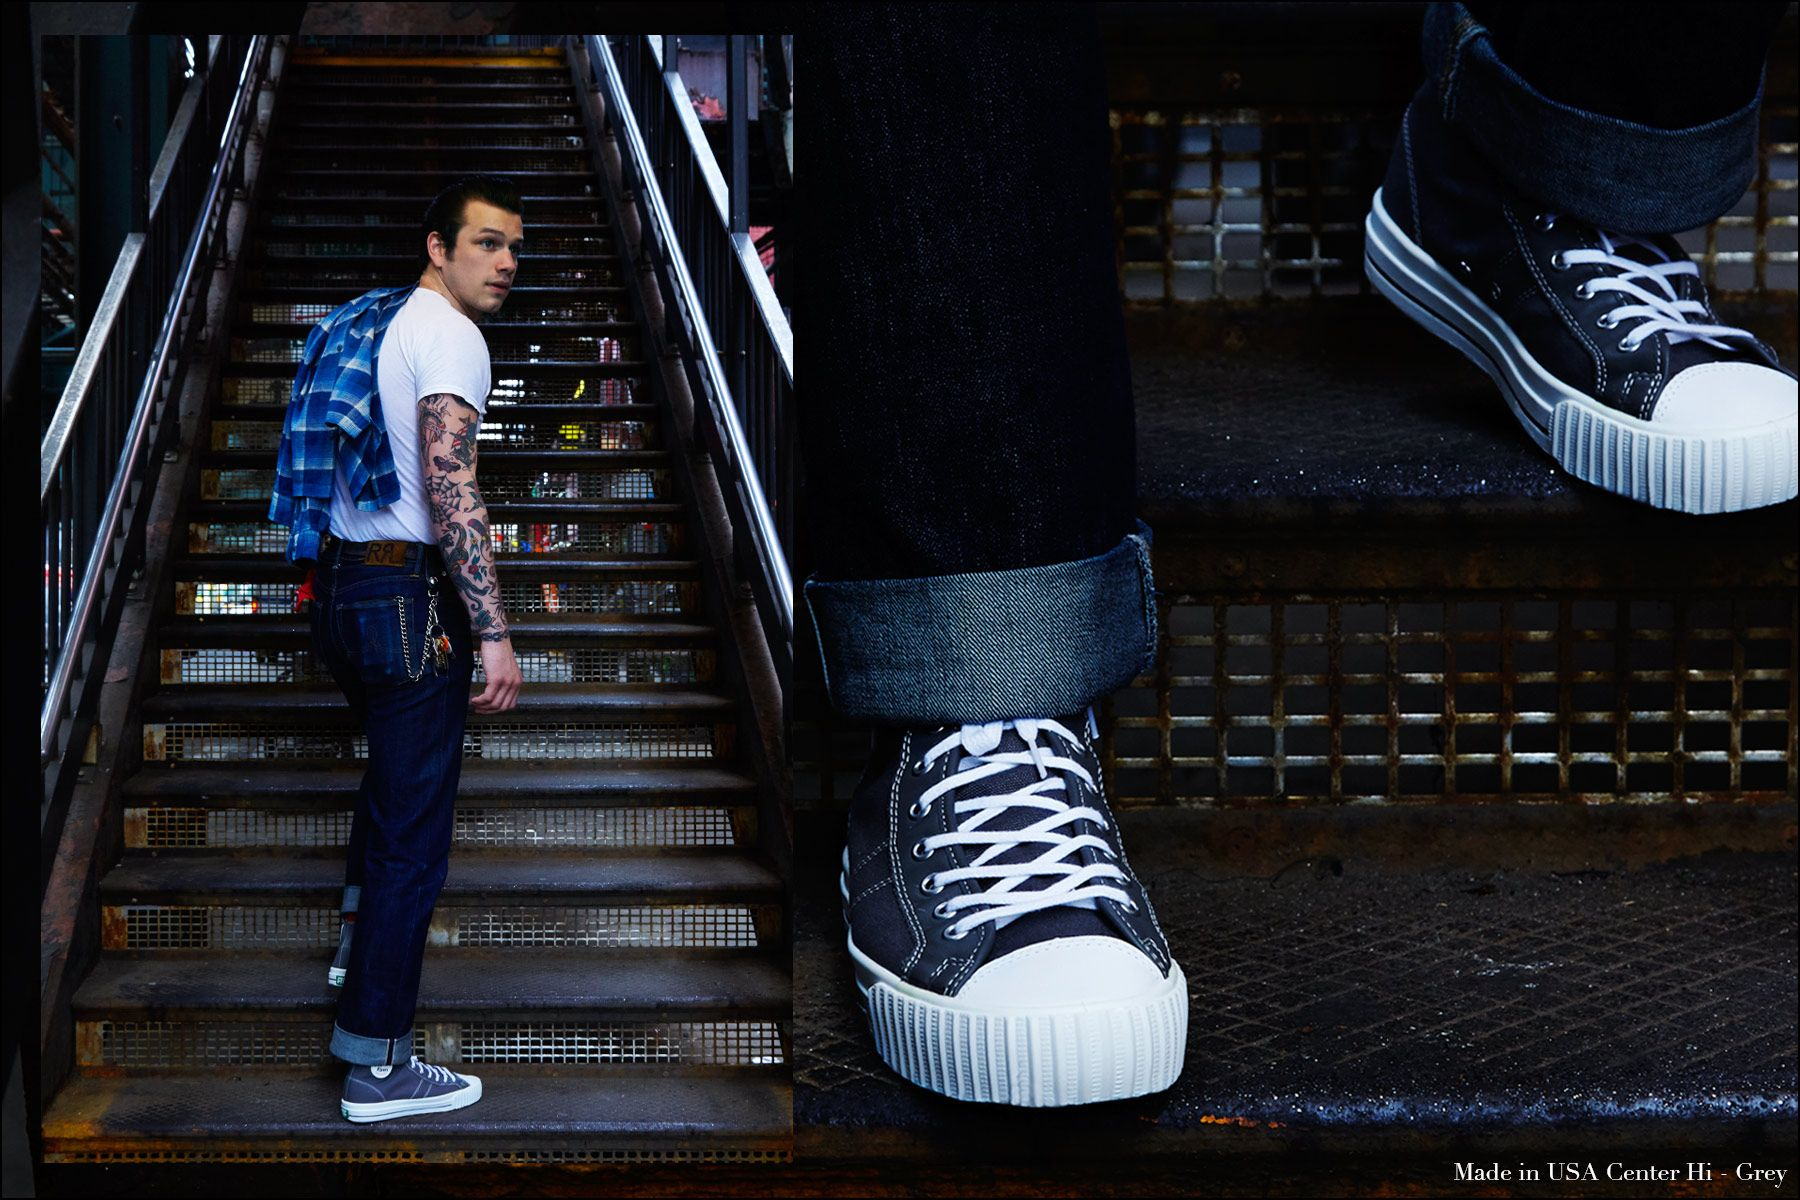 Drummer Rockabilly drummer Ben Heymann photographed at the New York City subway in PF Flyers Made in USA sneakers by Alexander Thompson for Ponyboy magazine.